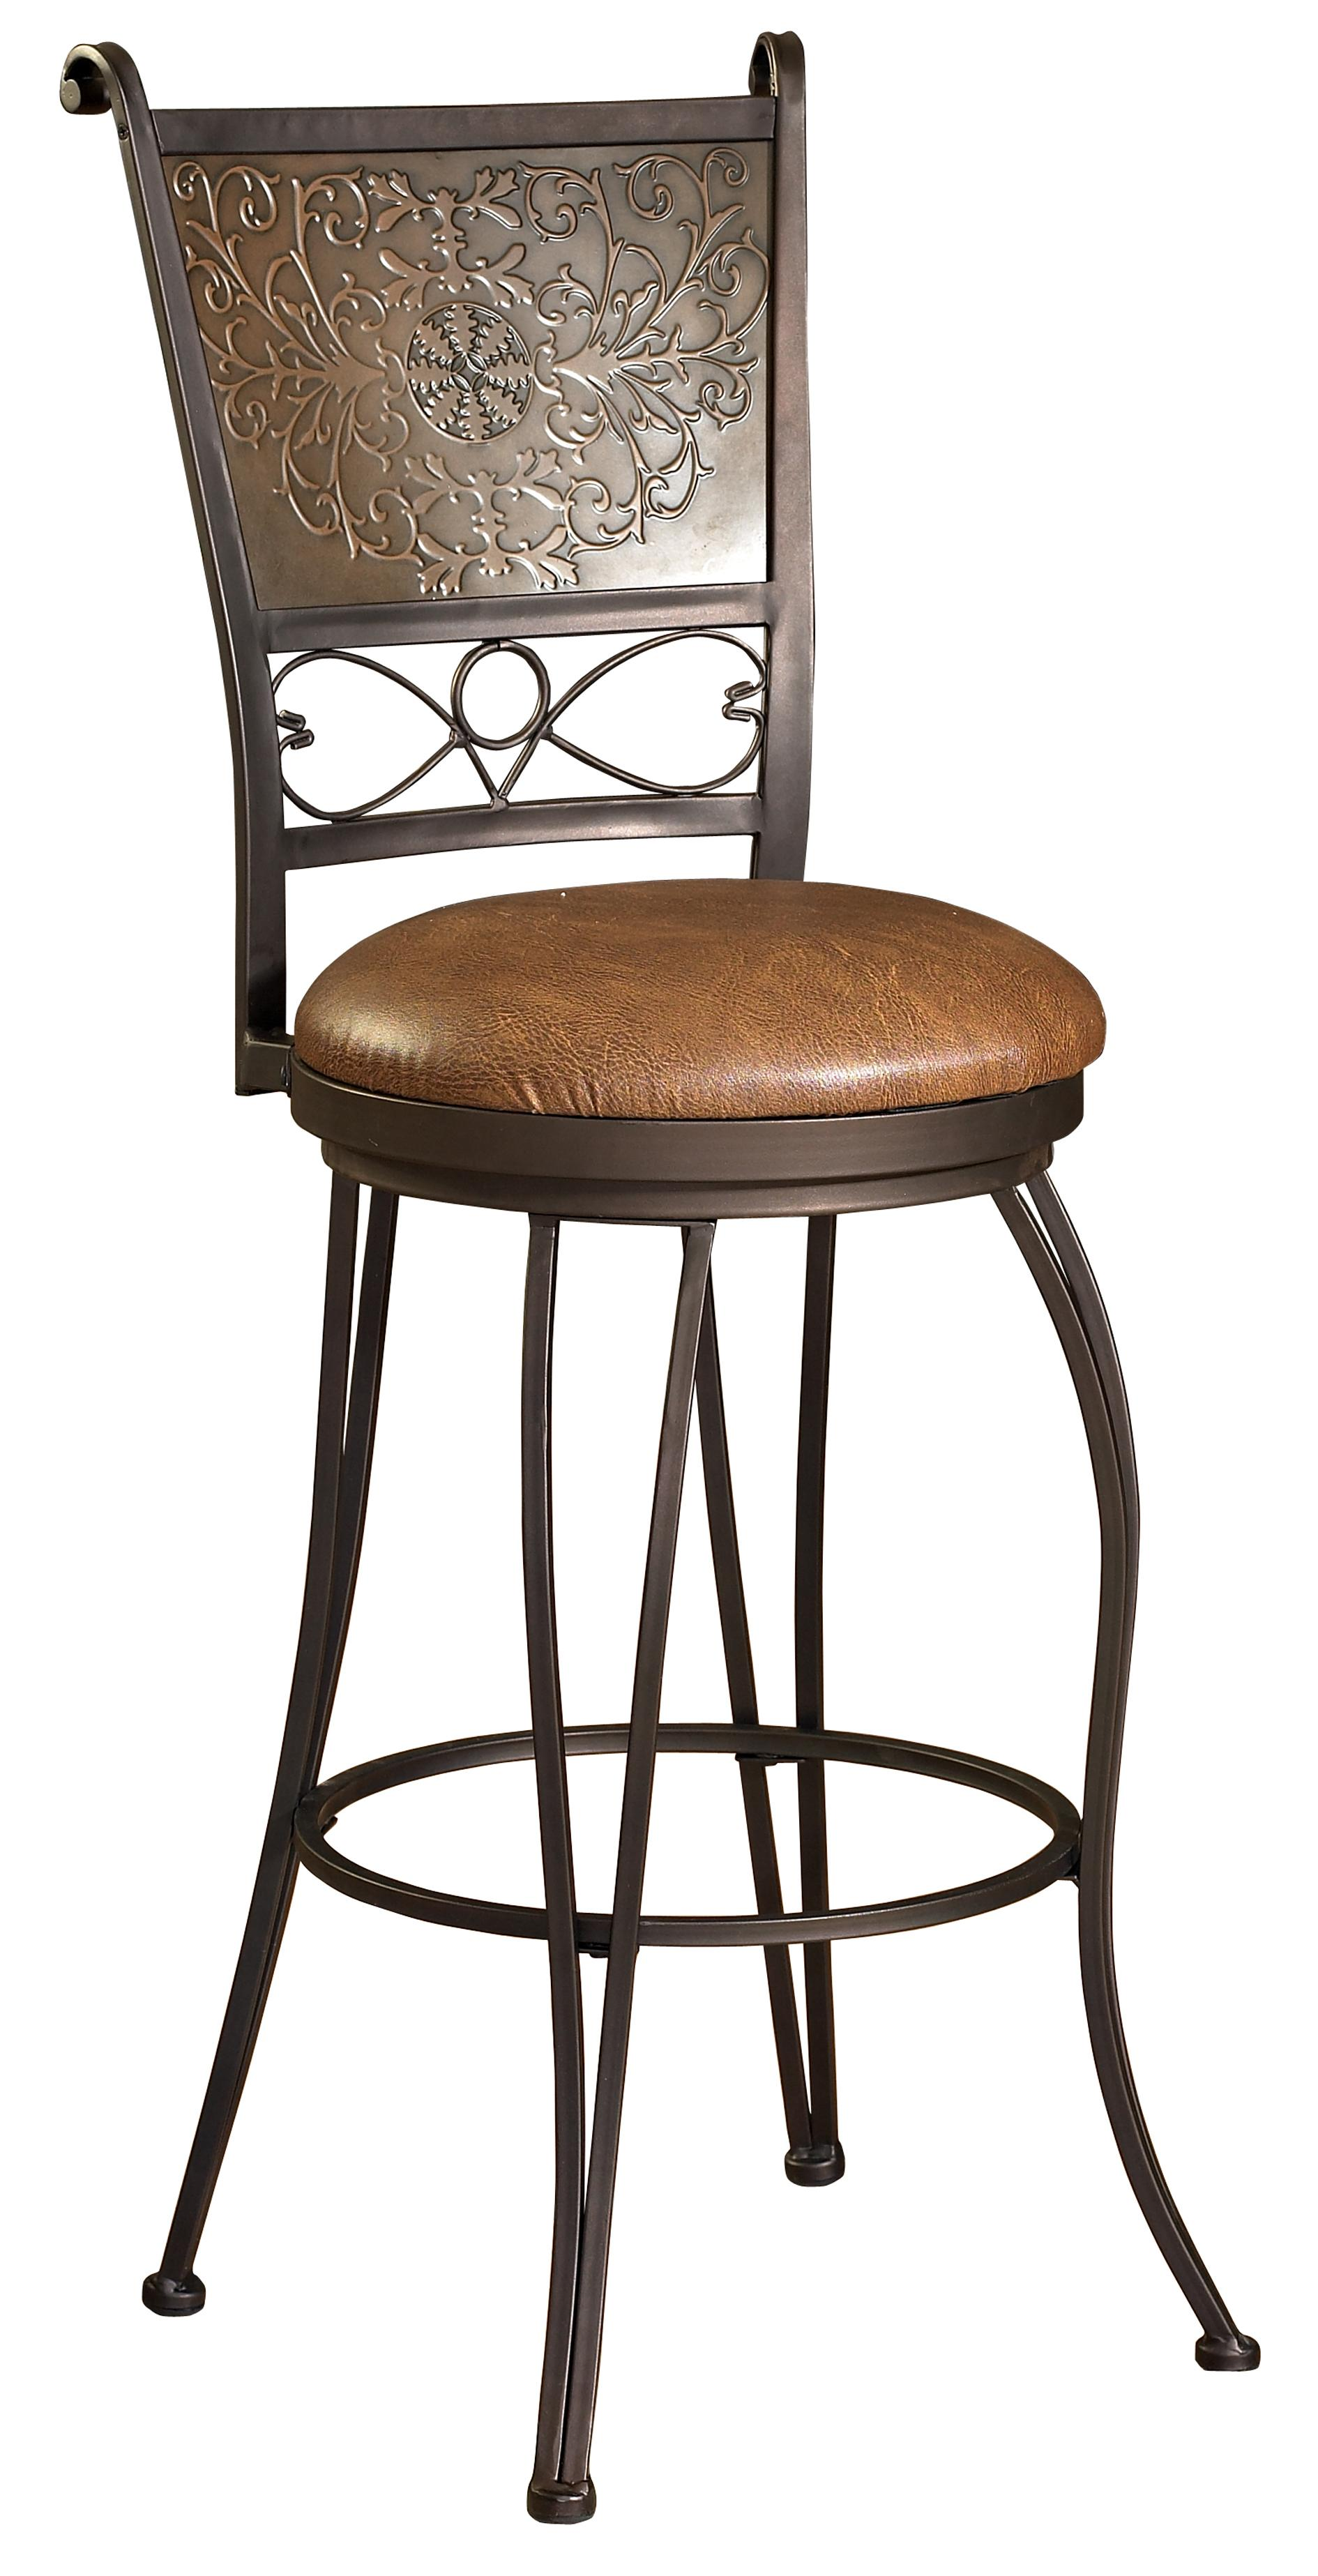 Powell Bar Stools & Tables 30 inch Stamped Back Bar Stool - Item Number: 222-847